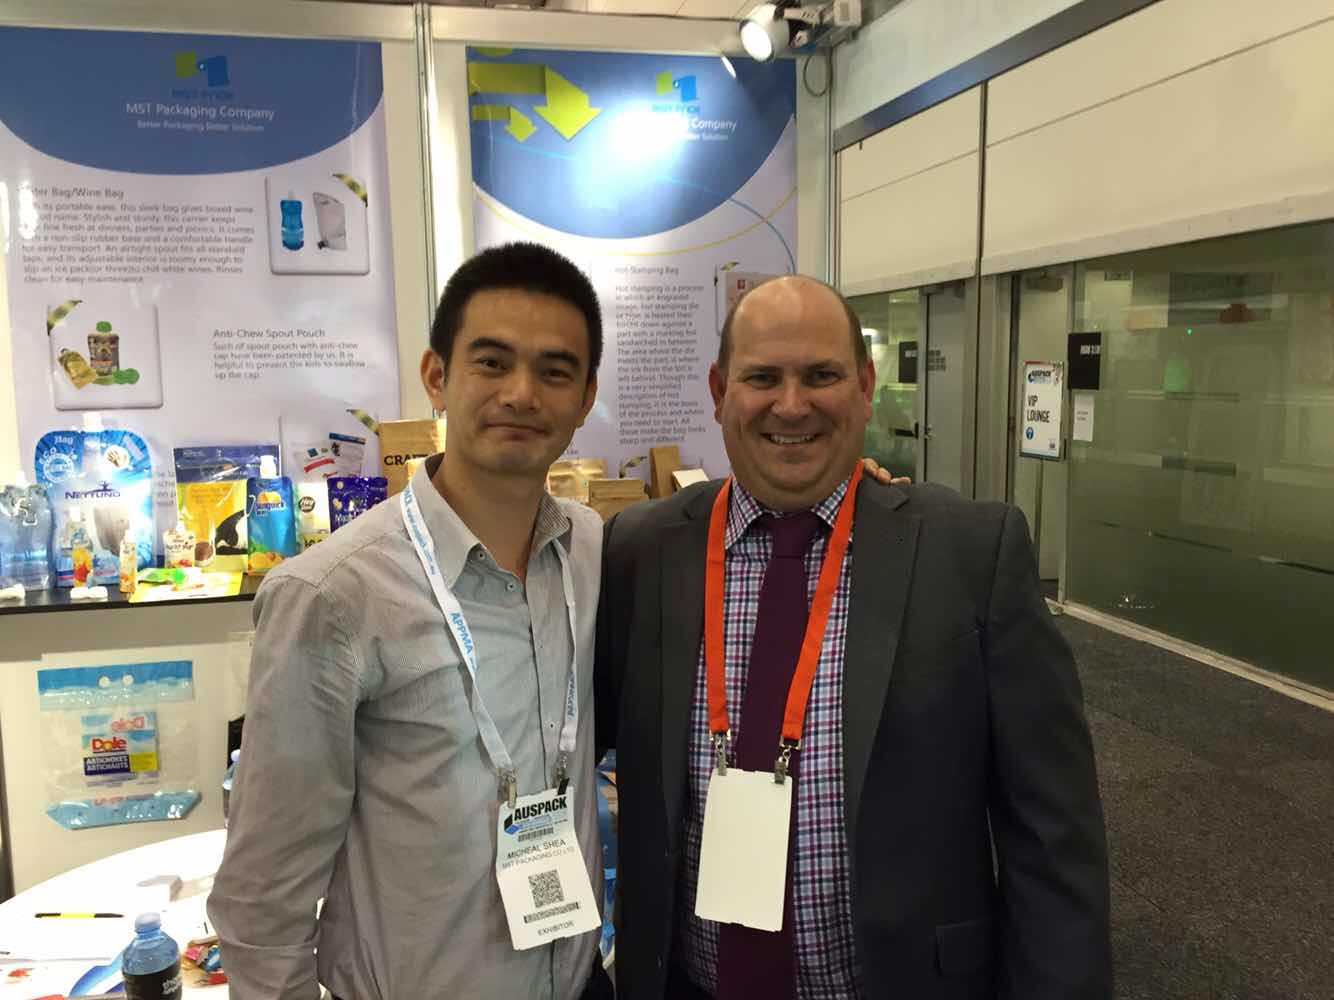 2015 Australian Packaging Exhibition